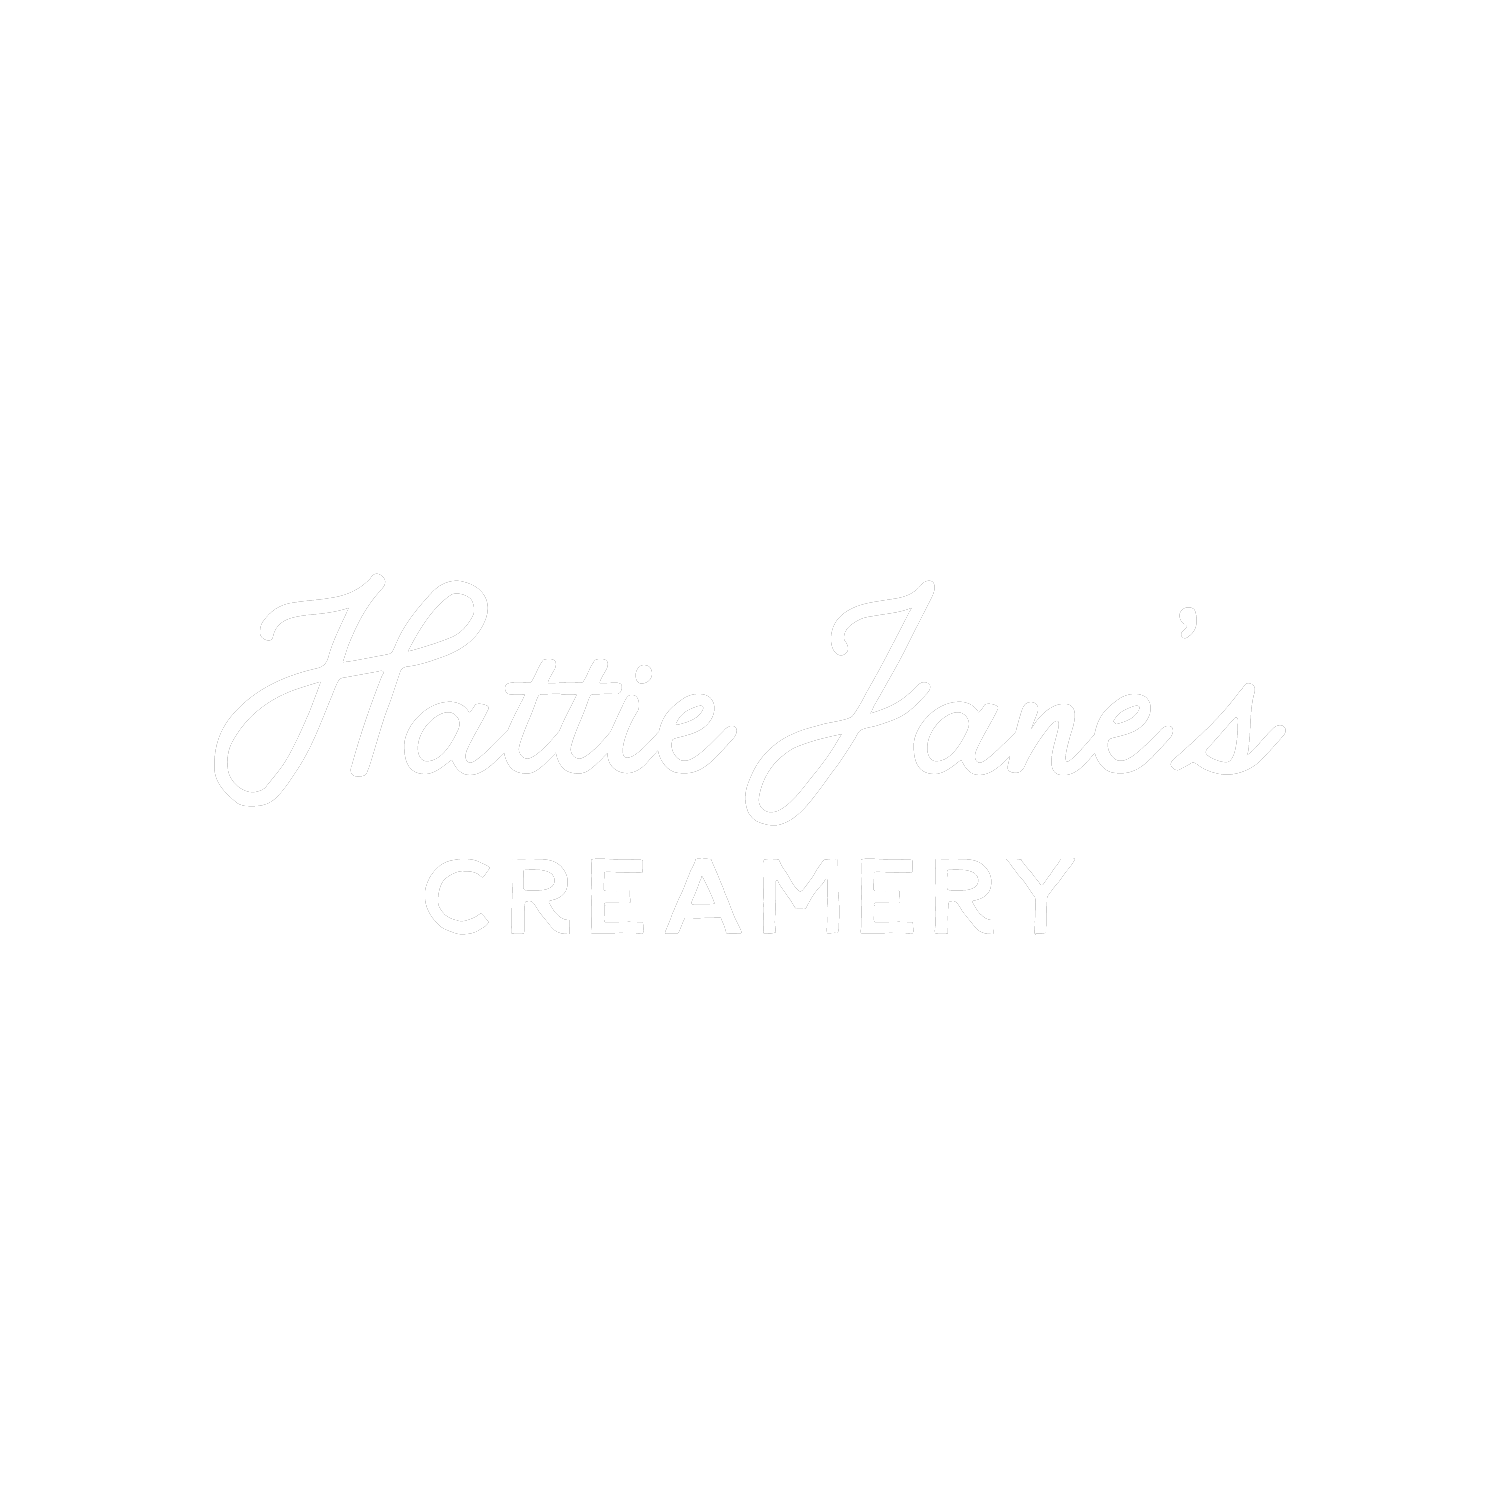 Hattie Jane's Creamery - vendor logo